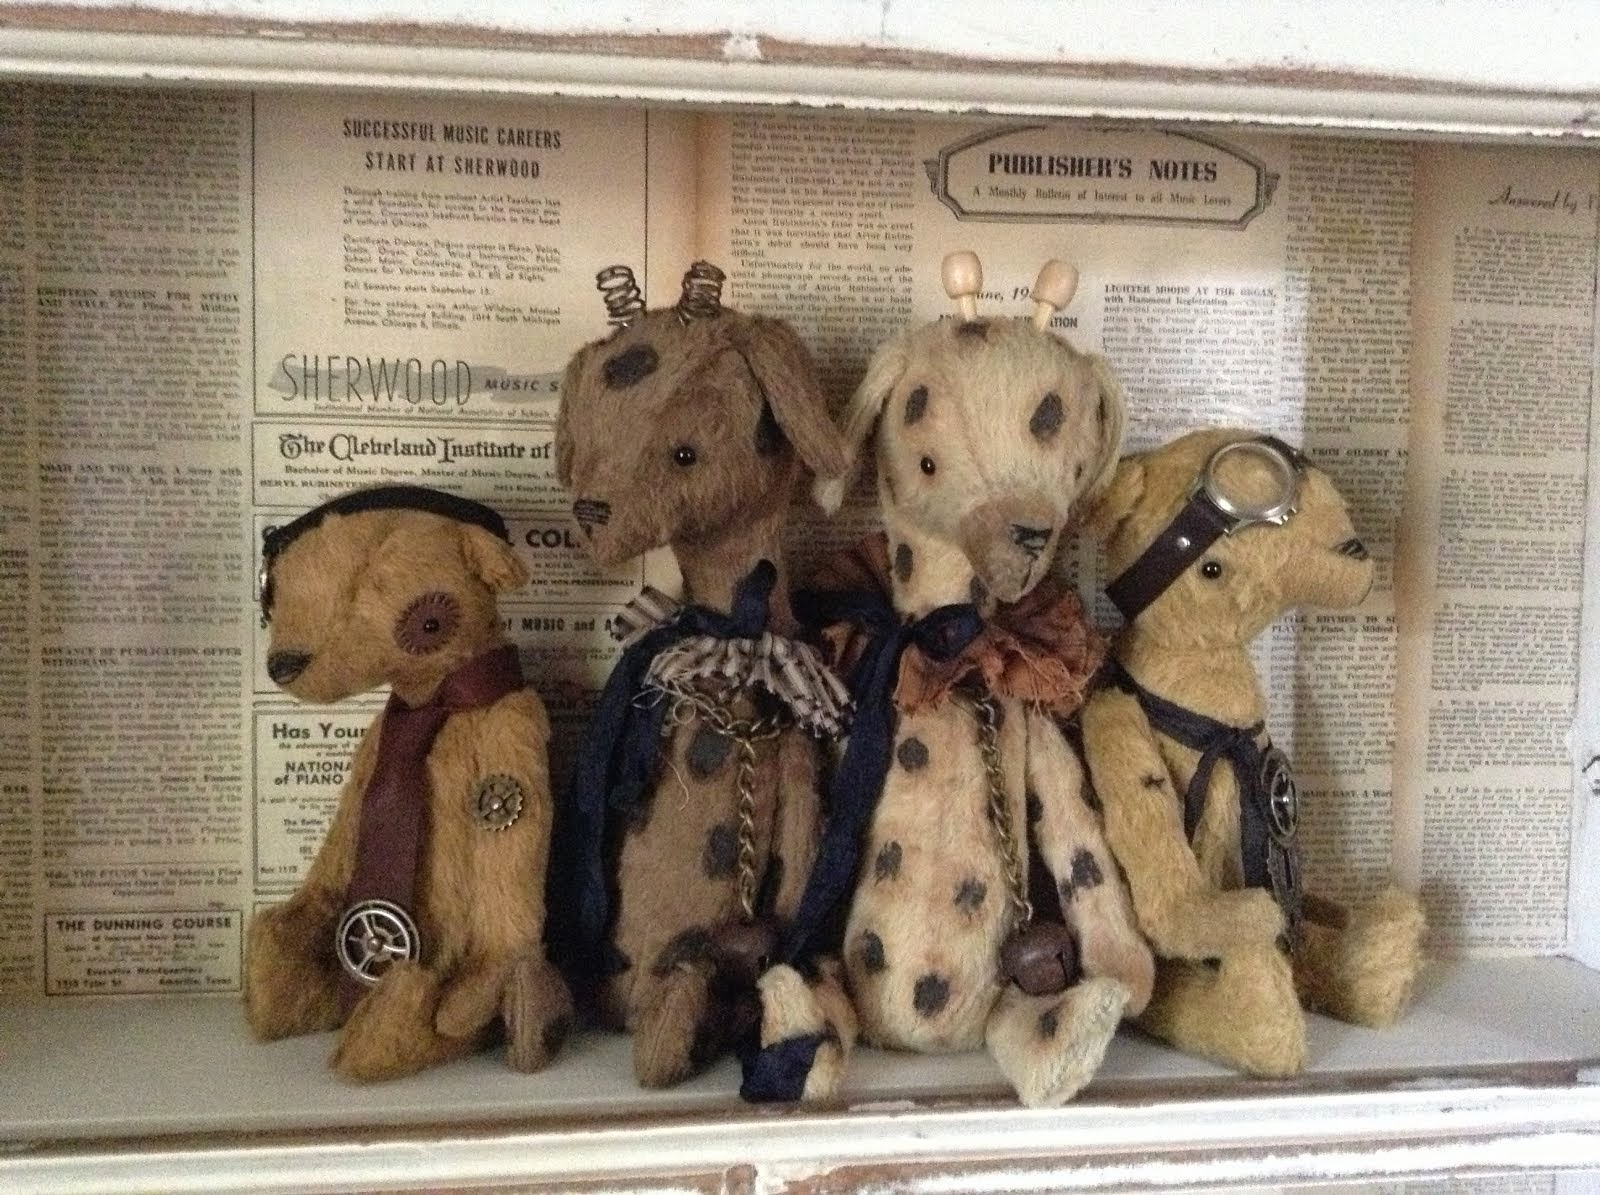 Steam punk bears and giraffes